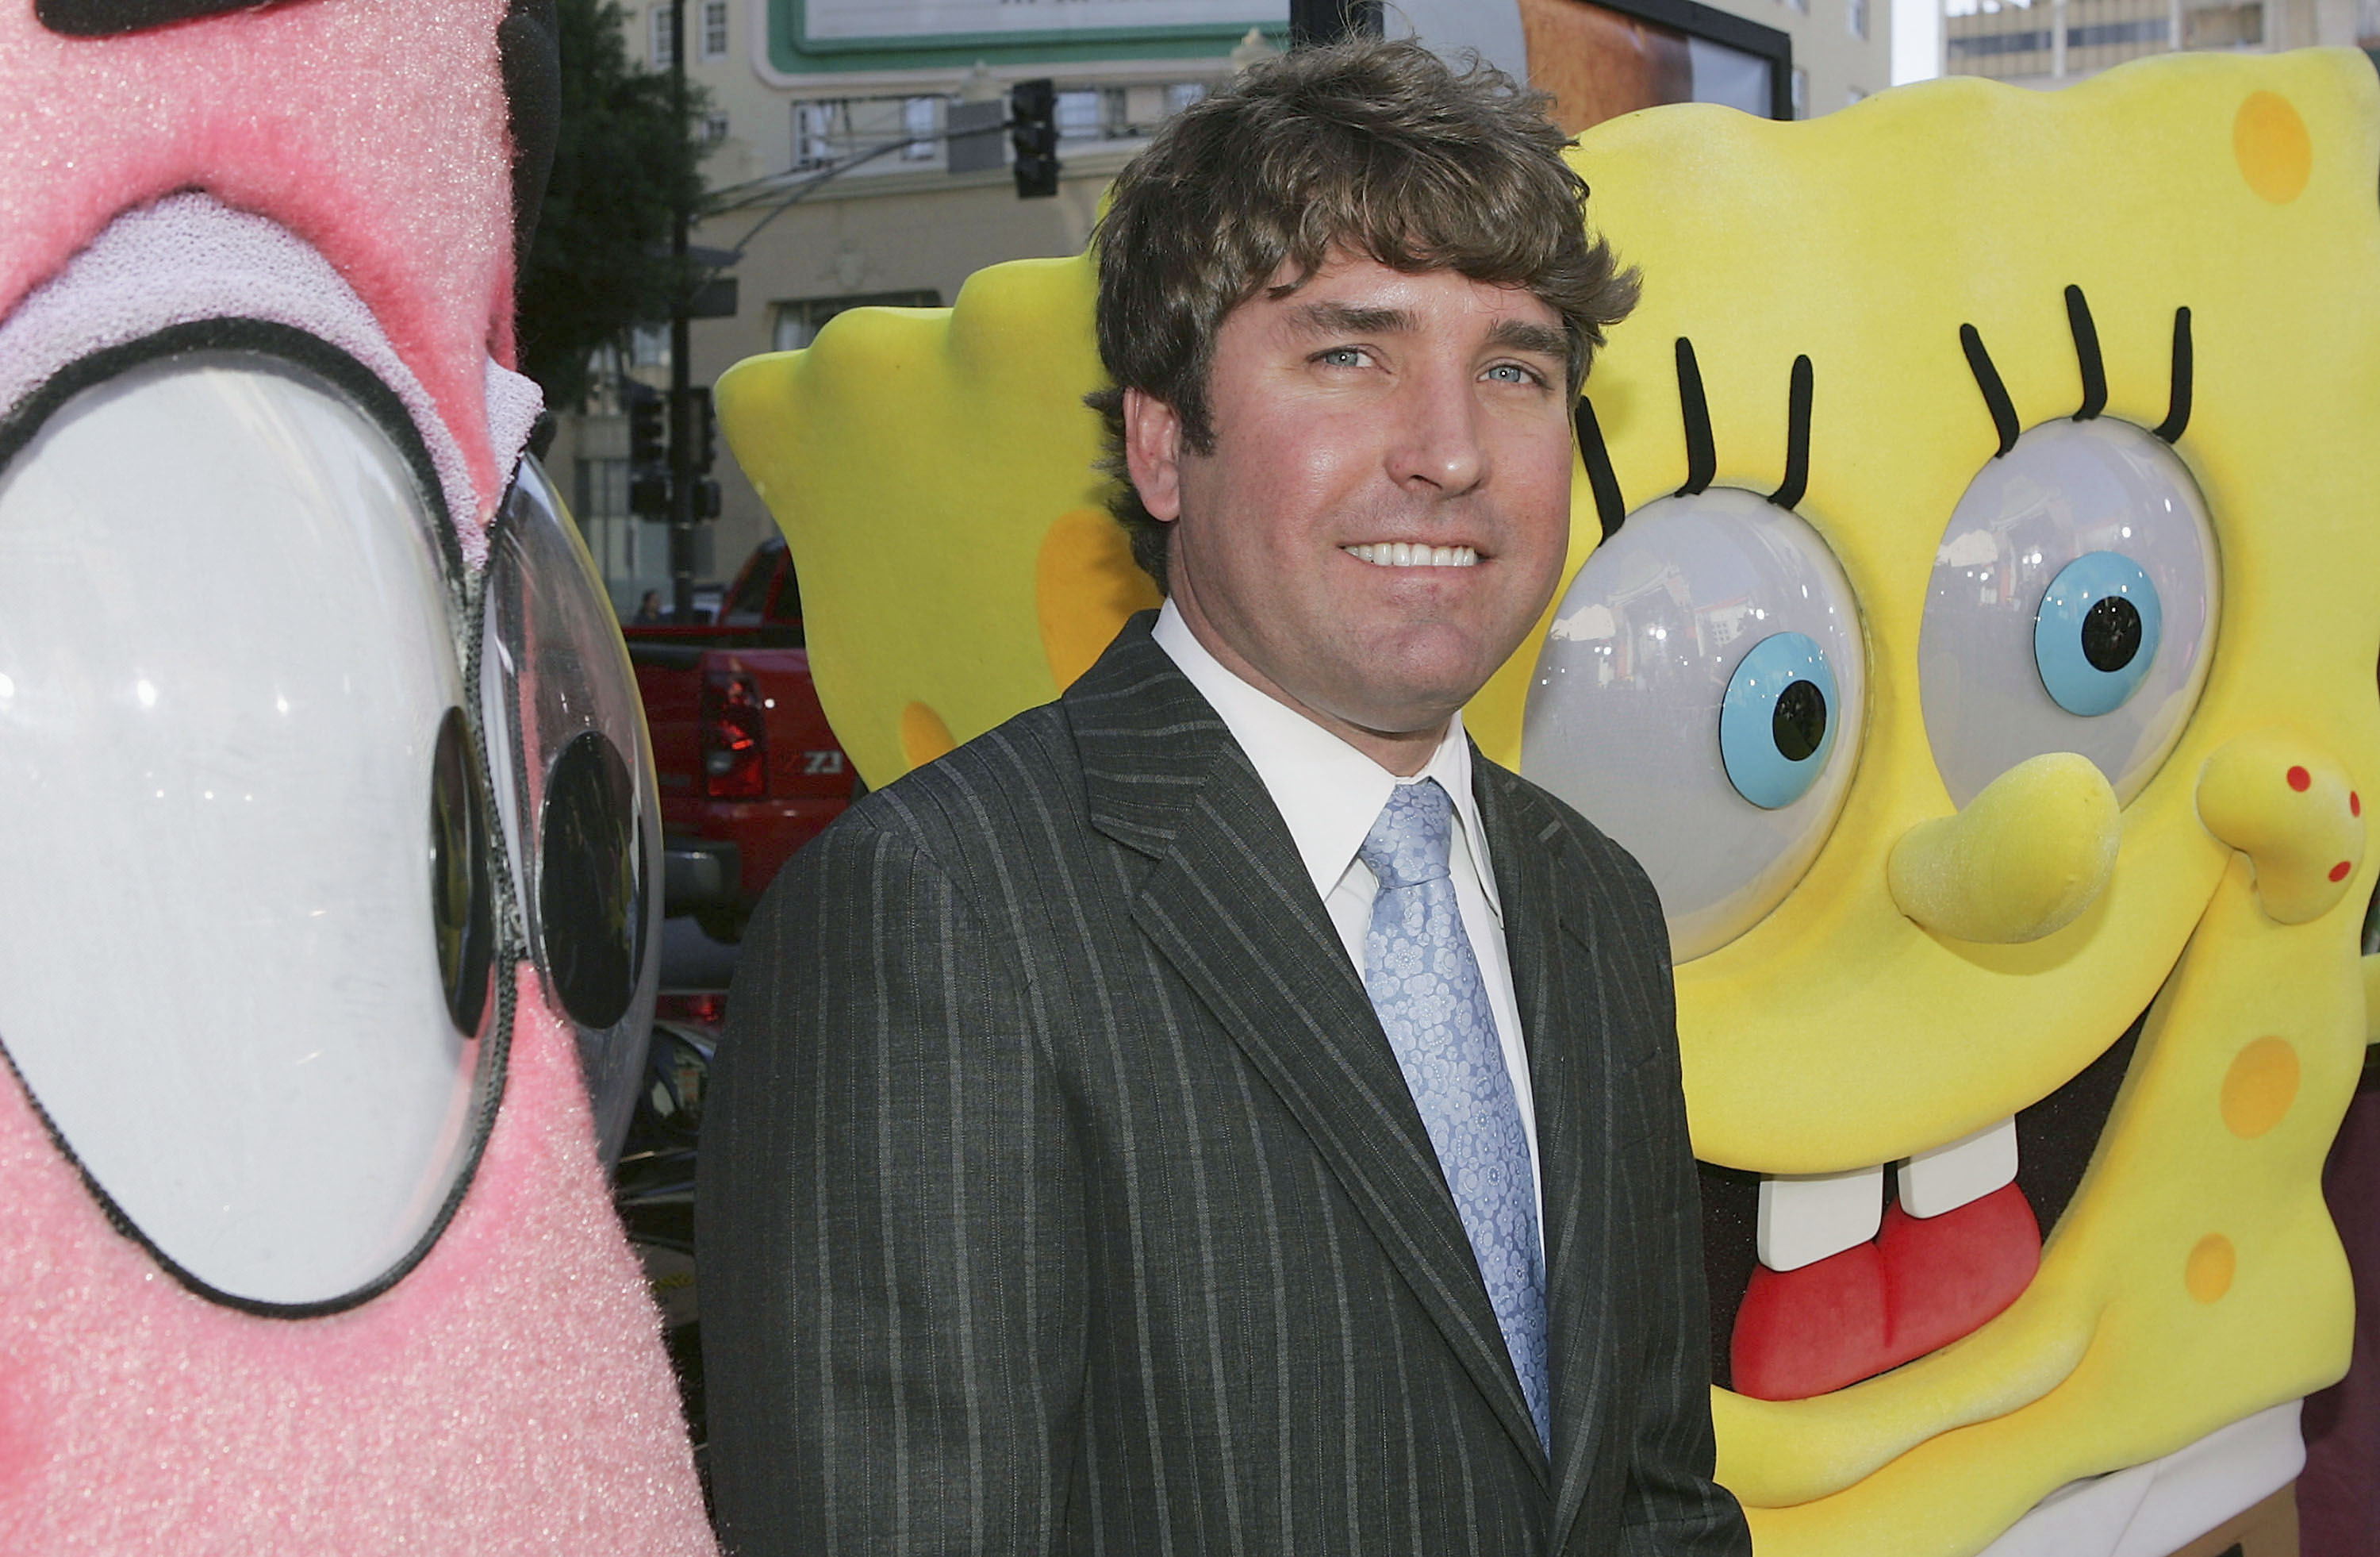 Director Stephen Hillenburg attends the film premiere of 'The Spongebob Squarepants Movie' at the Grauman's Chinese Theatre November 14, 2004 in Los Angeles, California.